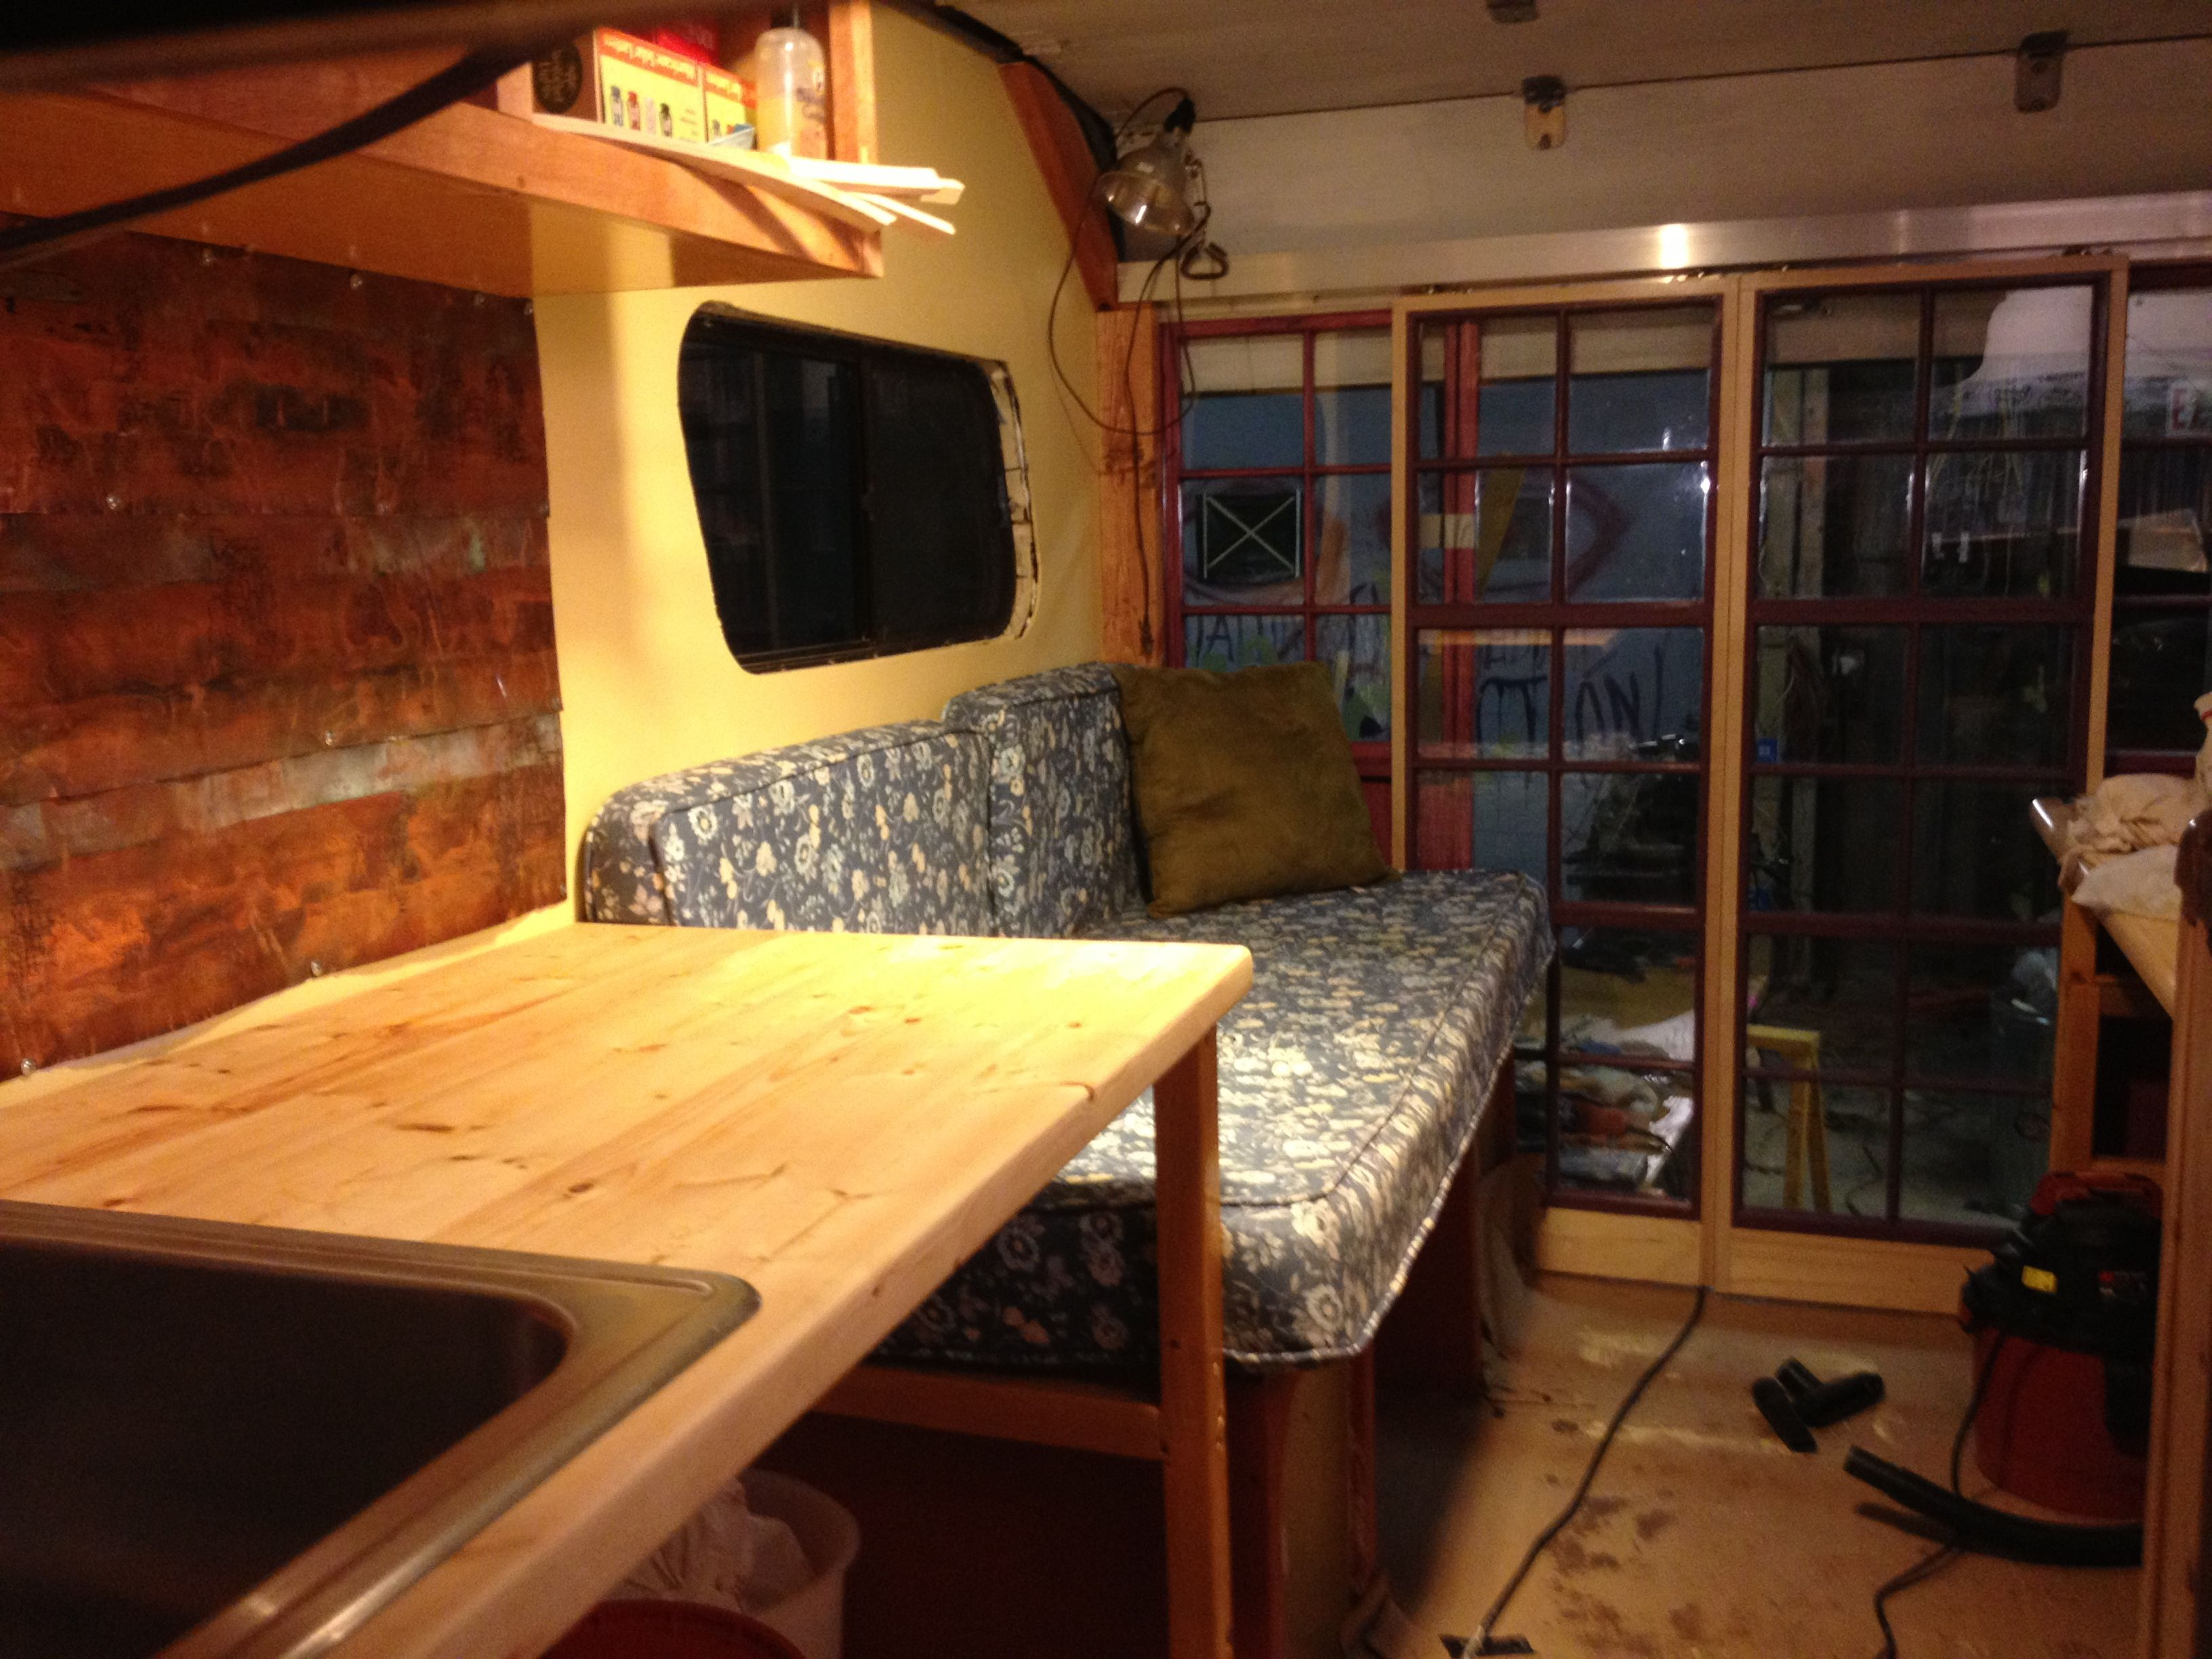 Uhaul Conversion With Kitchen Bath Couch Sleeping Loft